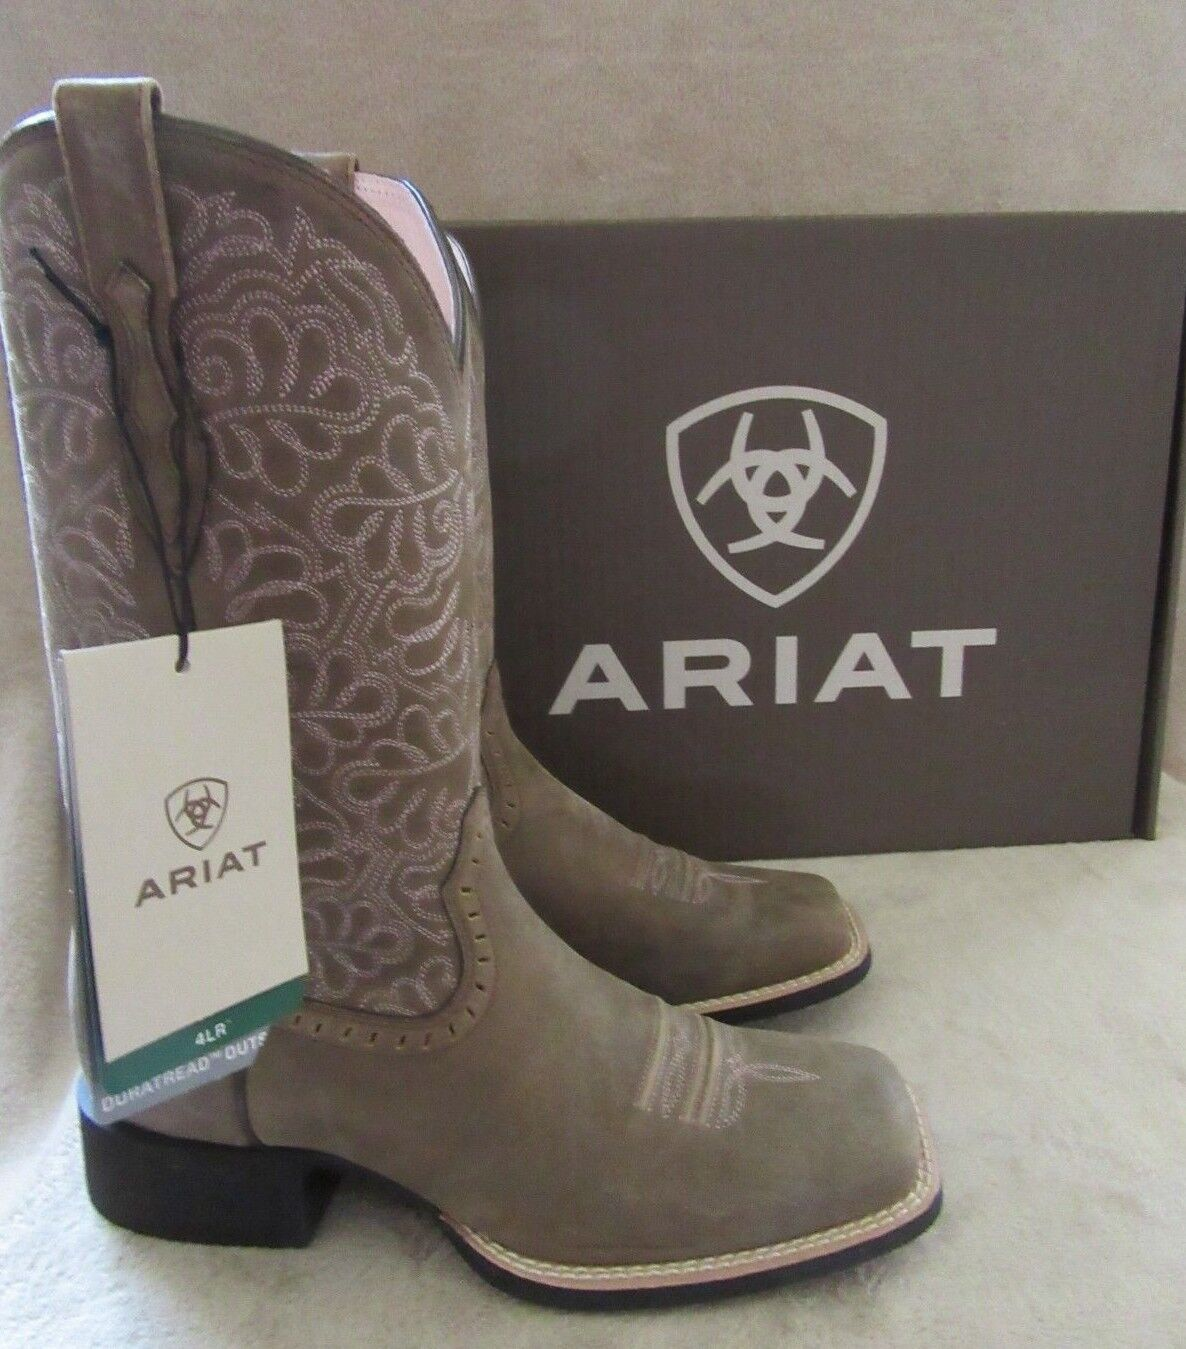 ARIAT 10019906 Round Up Remuda Brown Bomber Boots shoes US 7.5 M EUR 38 NWB